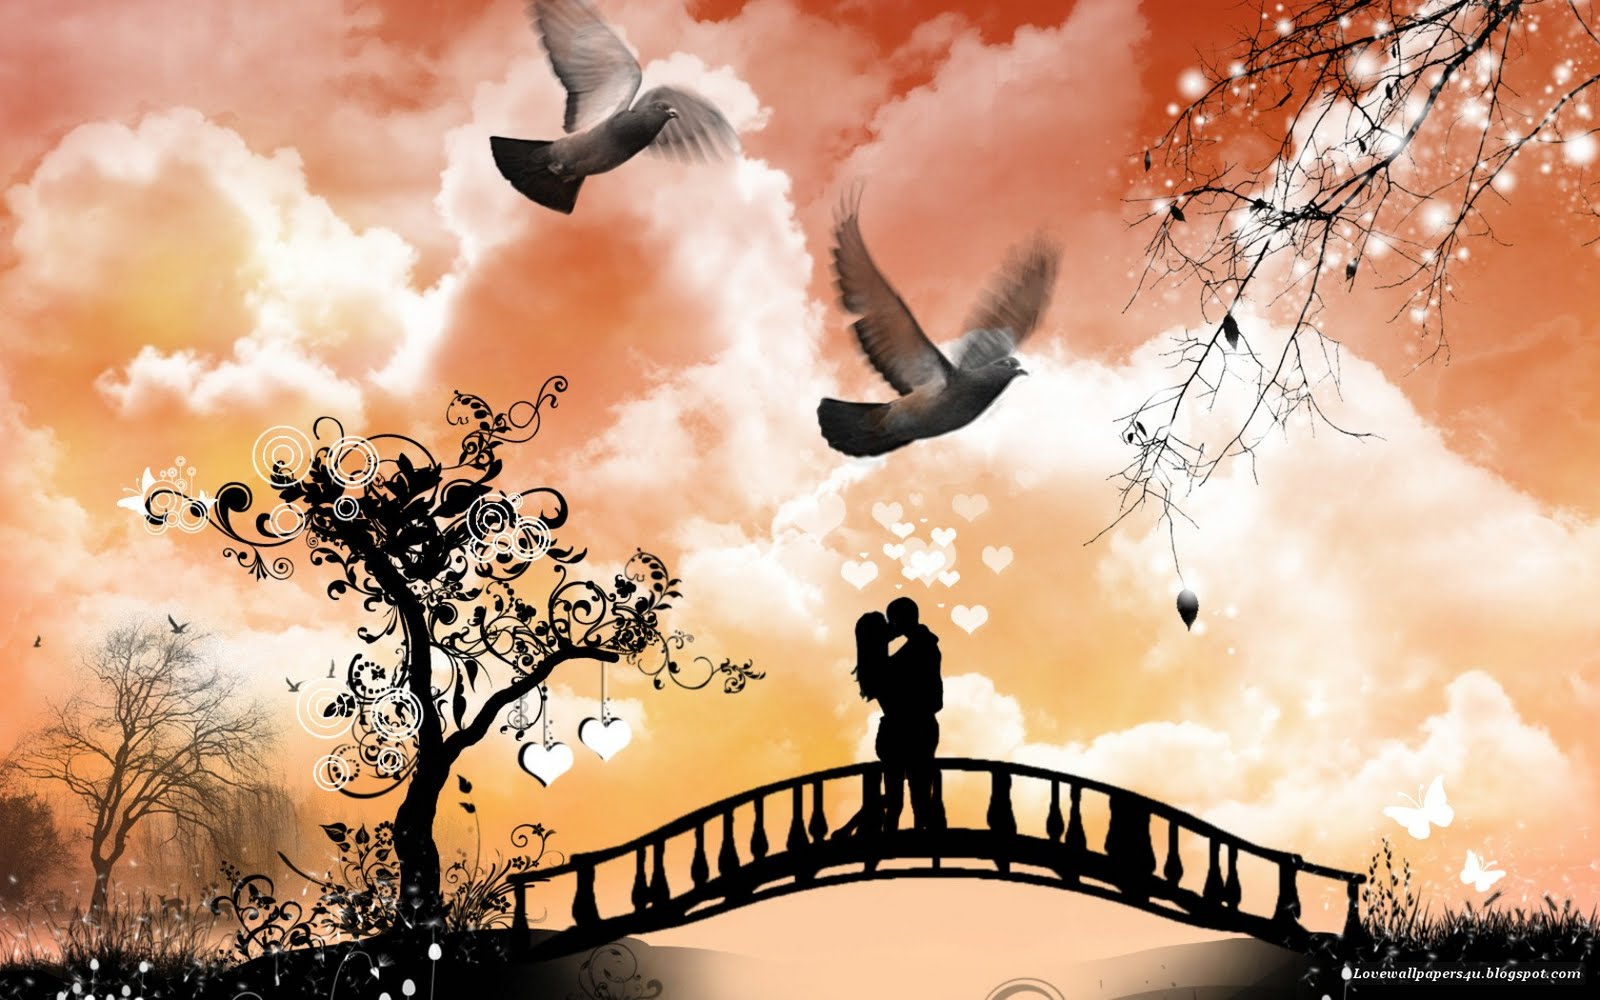 Romantic Love Wallpapers For Pc : Wallpapers - HD Desktop Wallpapers Free Online: Love ...